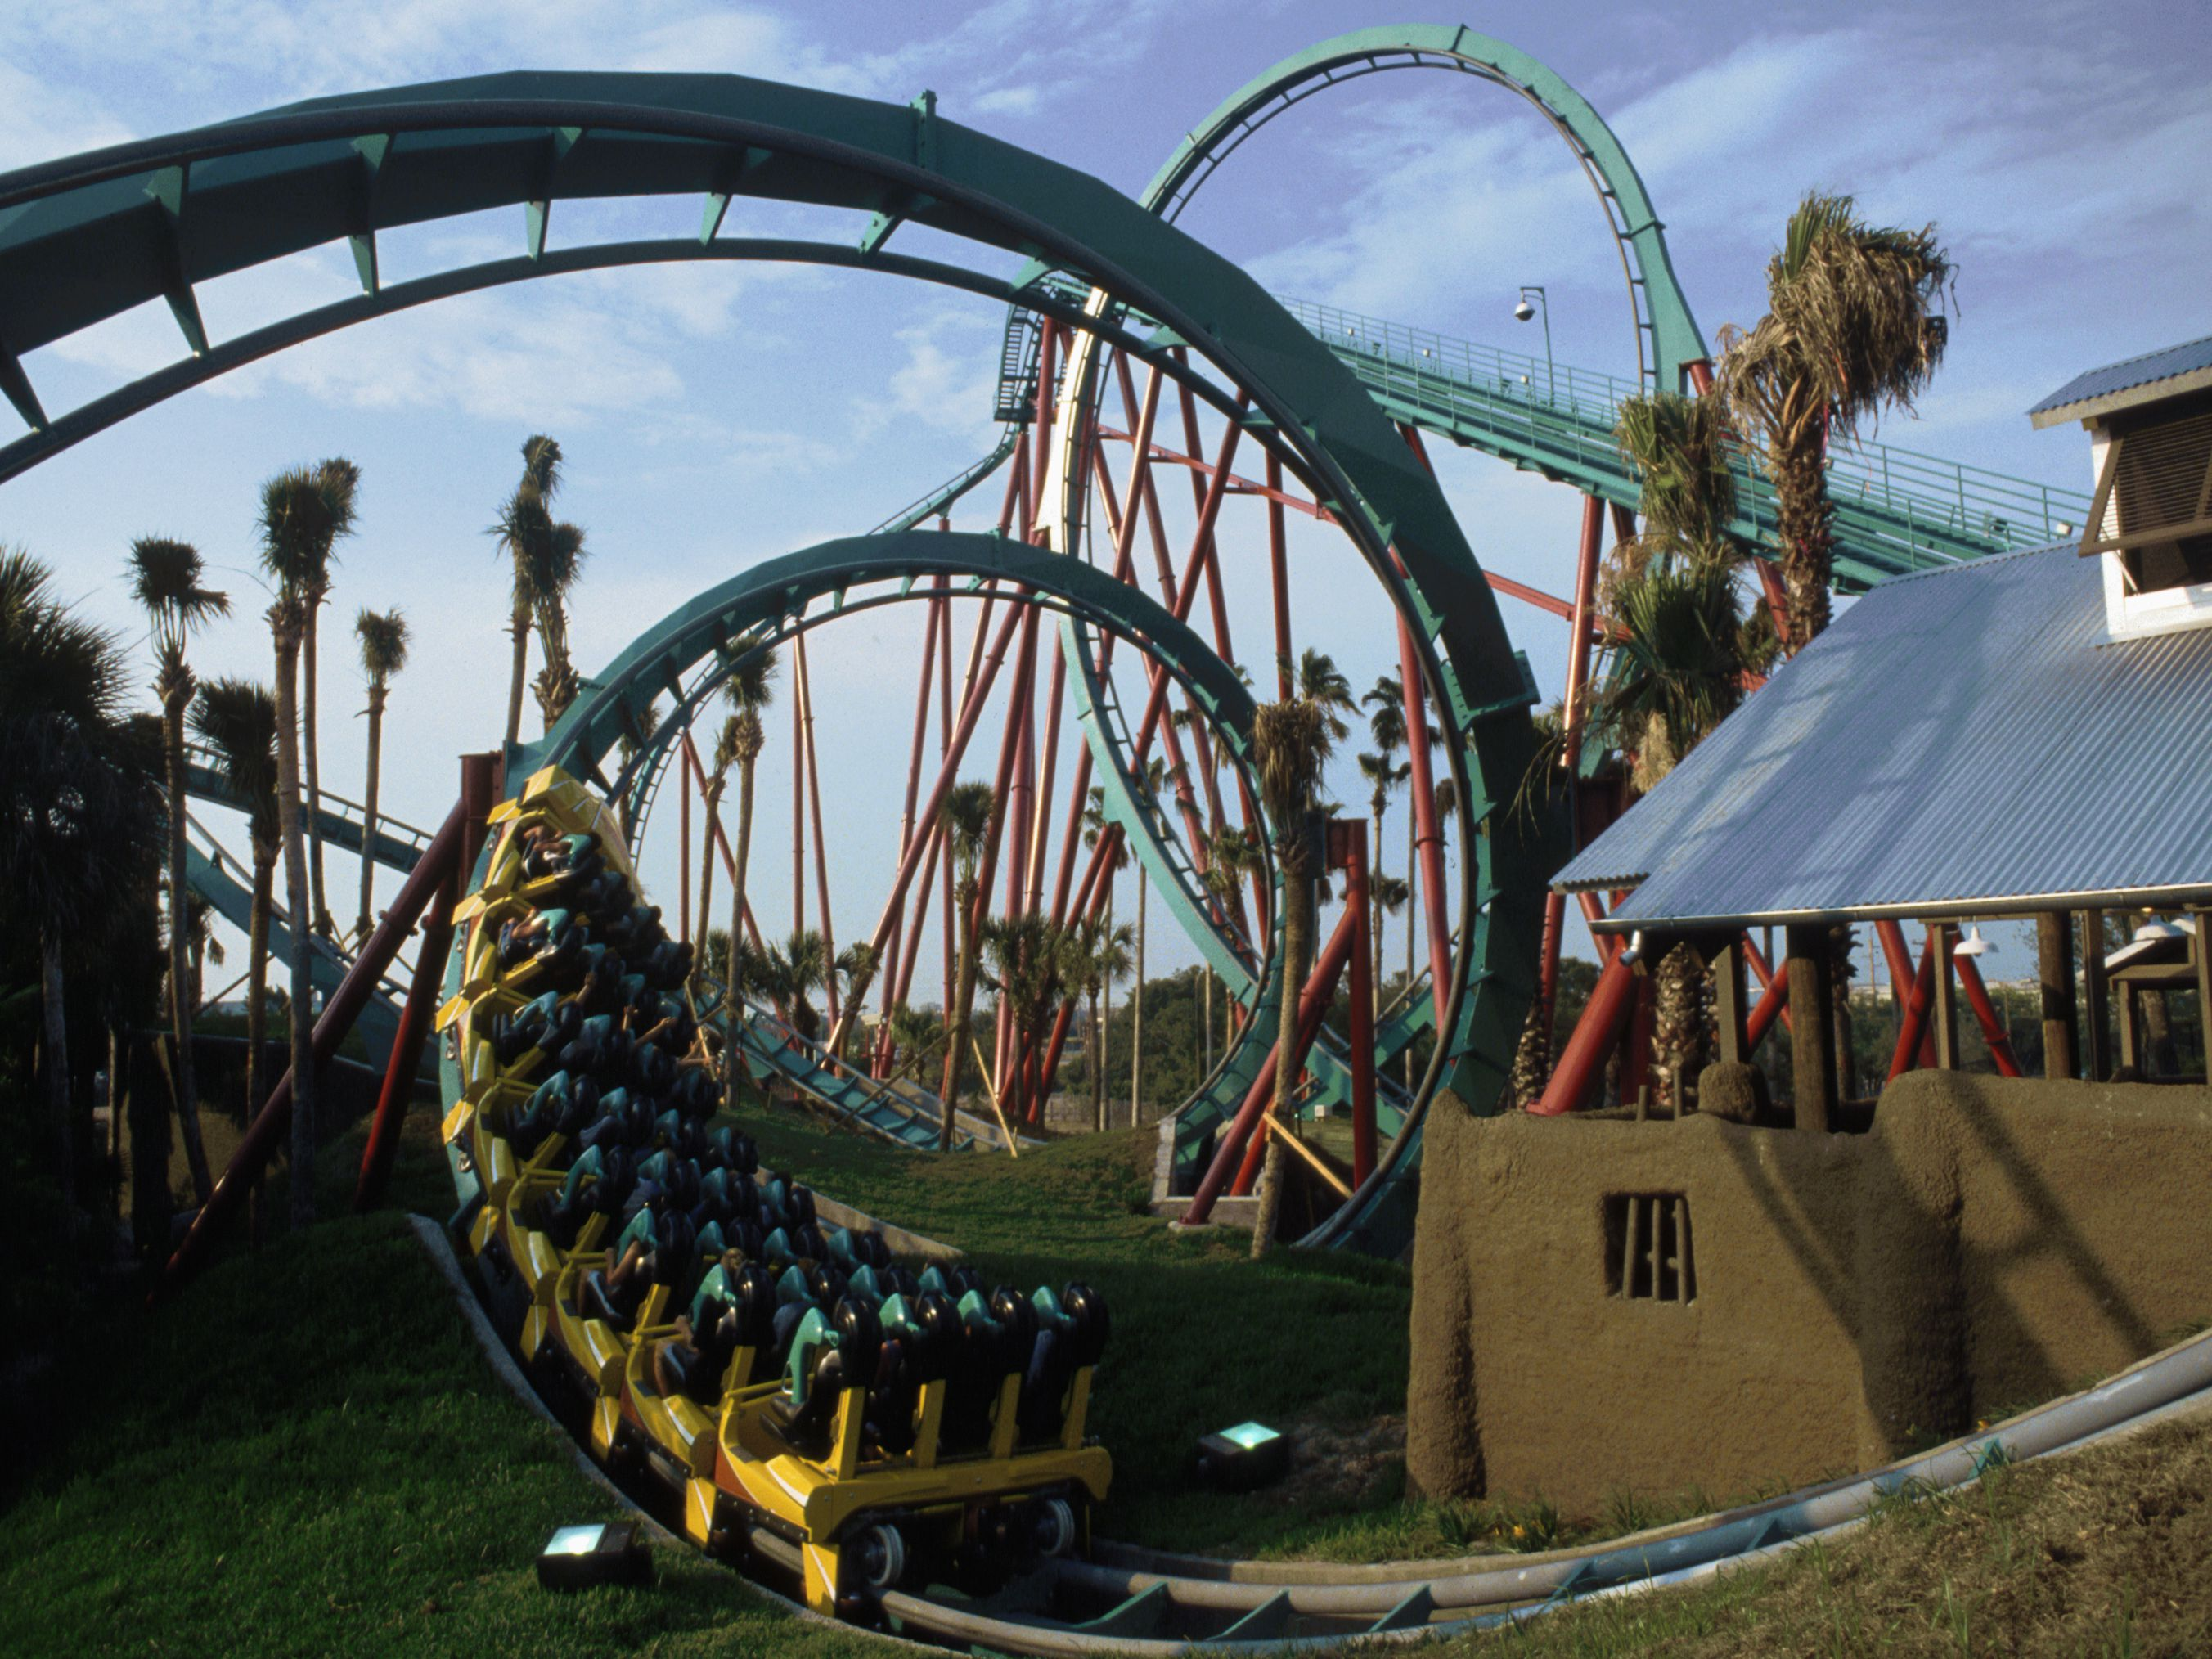 Busch Gardens Tampa Great Theme Park And Zoo